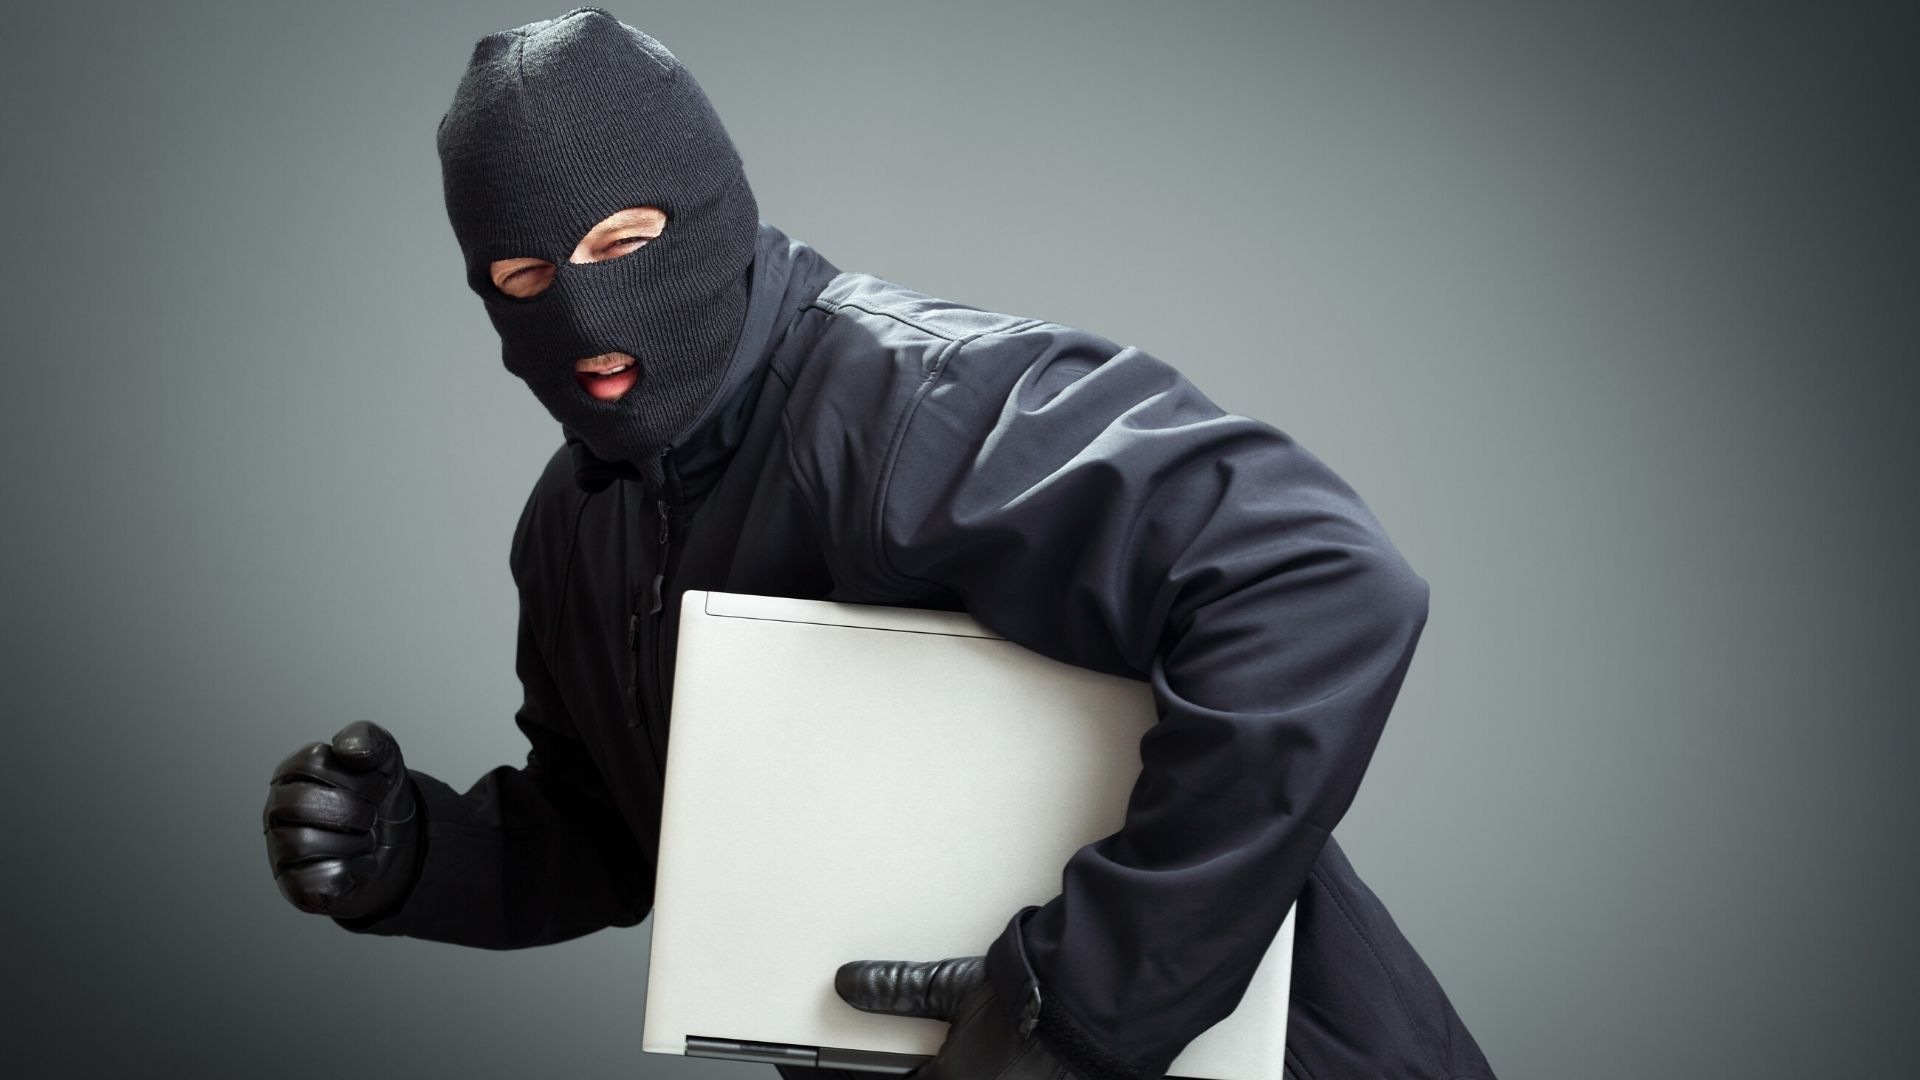 Preventing Identity Theft Has Never Been Easier